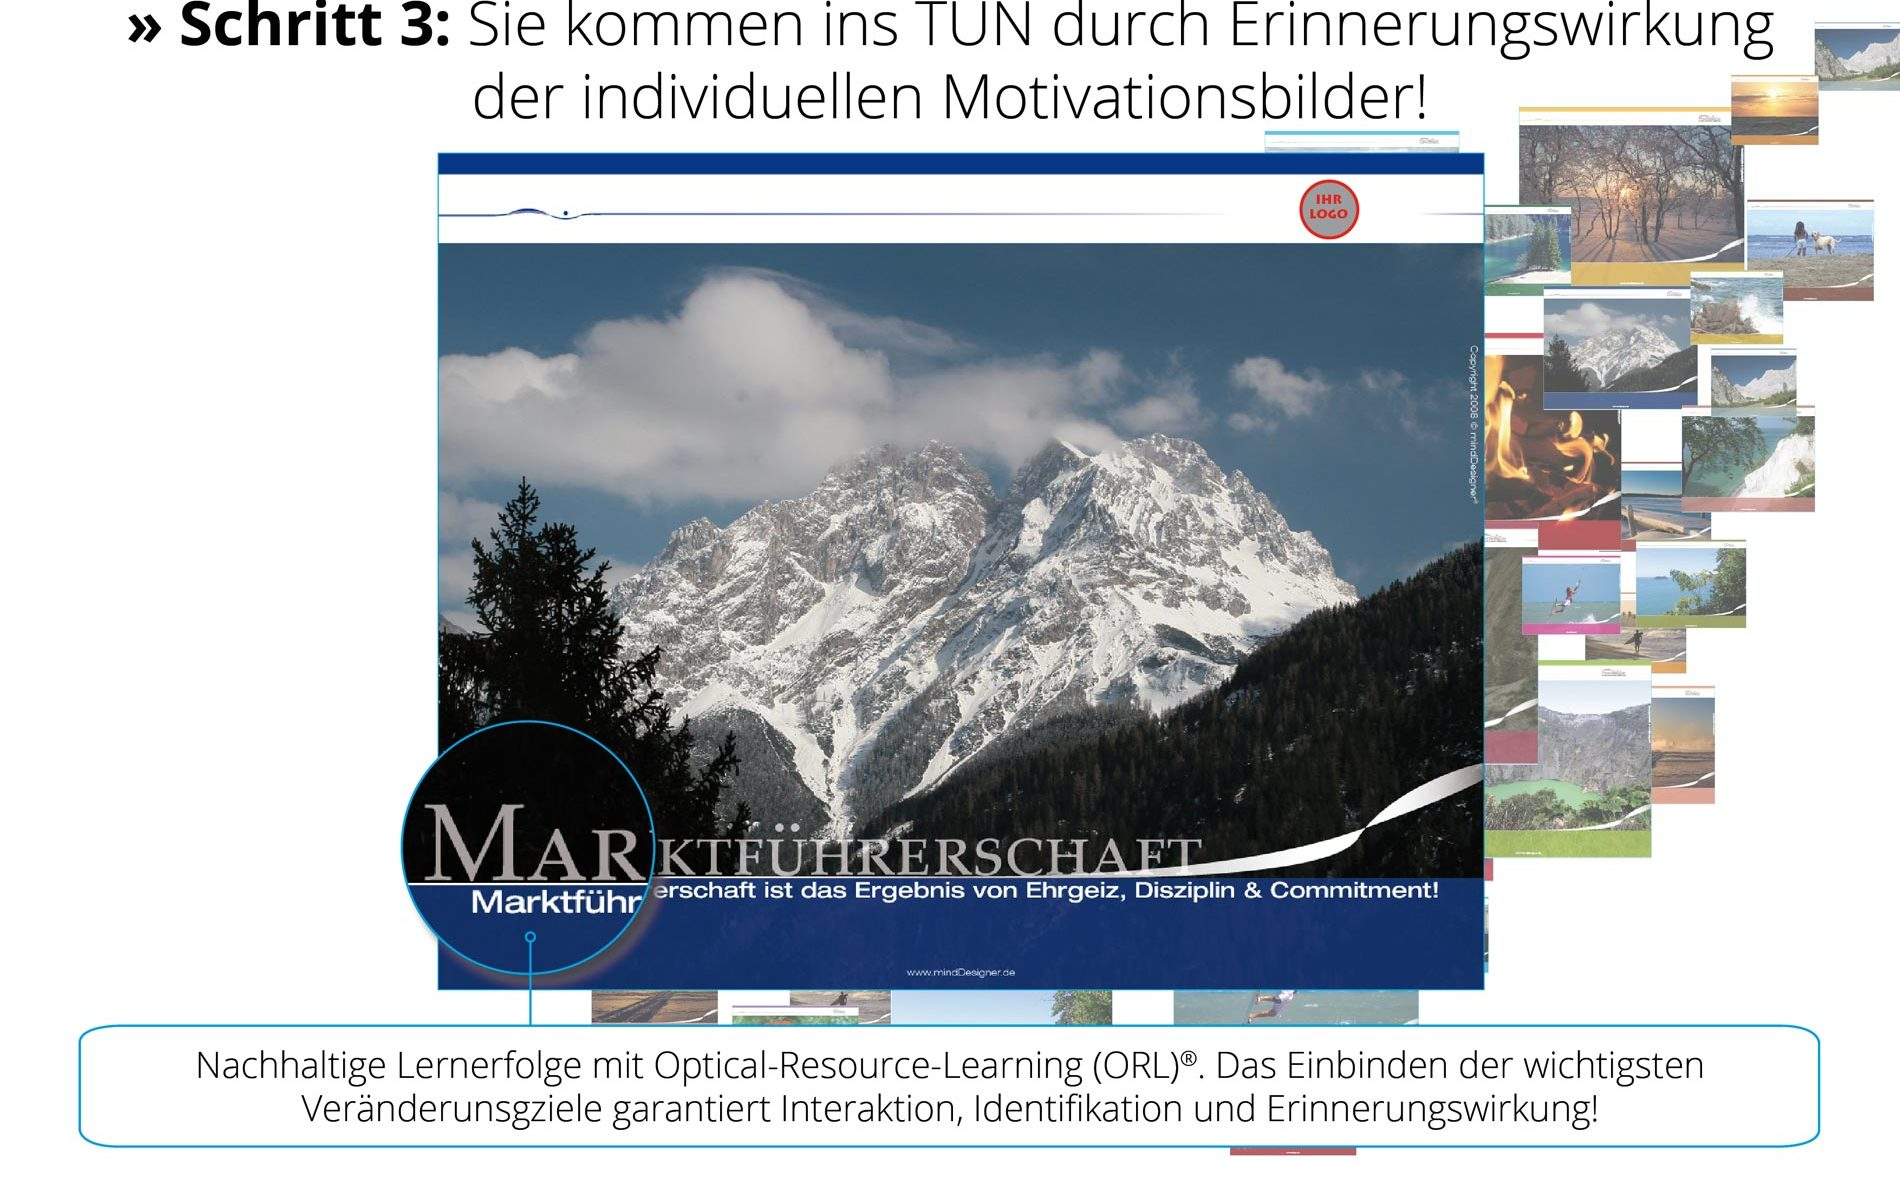 Motivationsbilder_Optical-Resource-Learning_Ueberblick_1900x1200-RTP-4